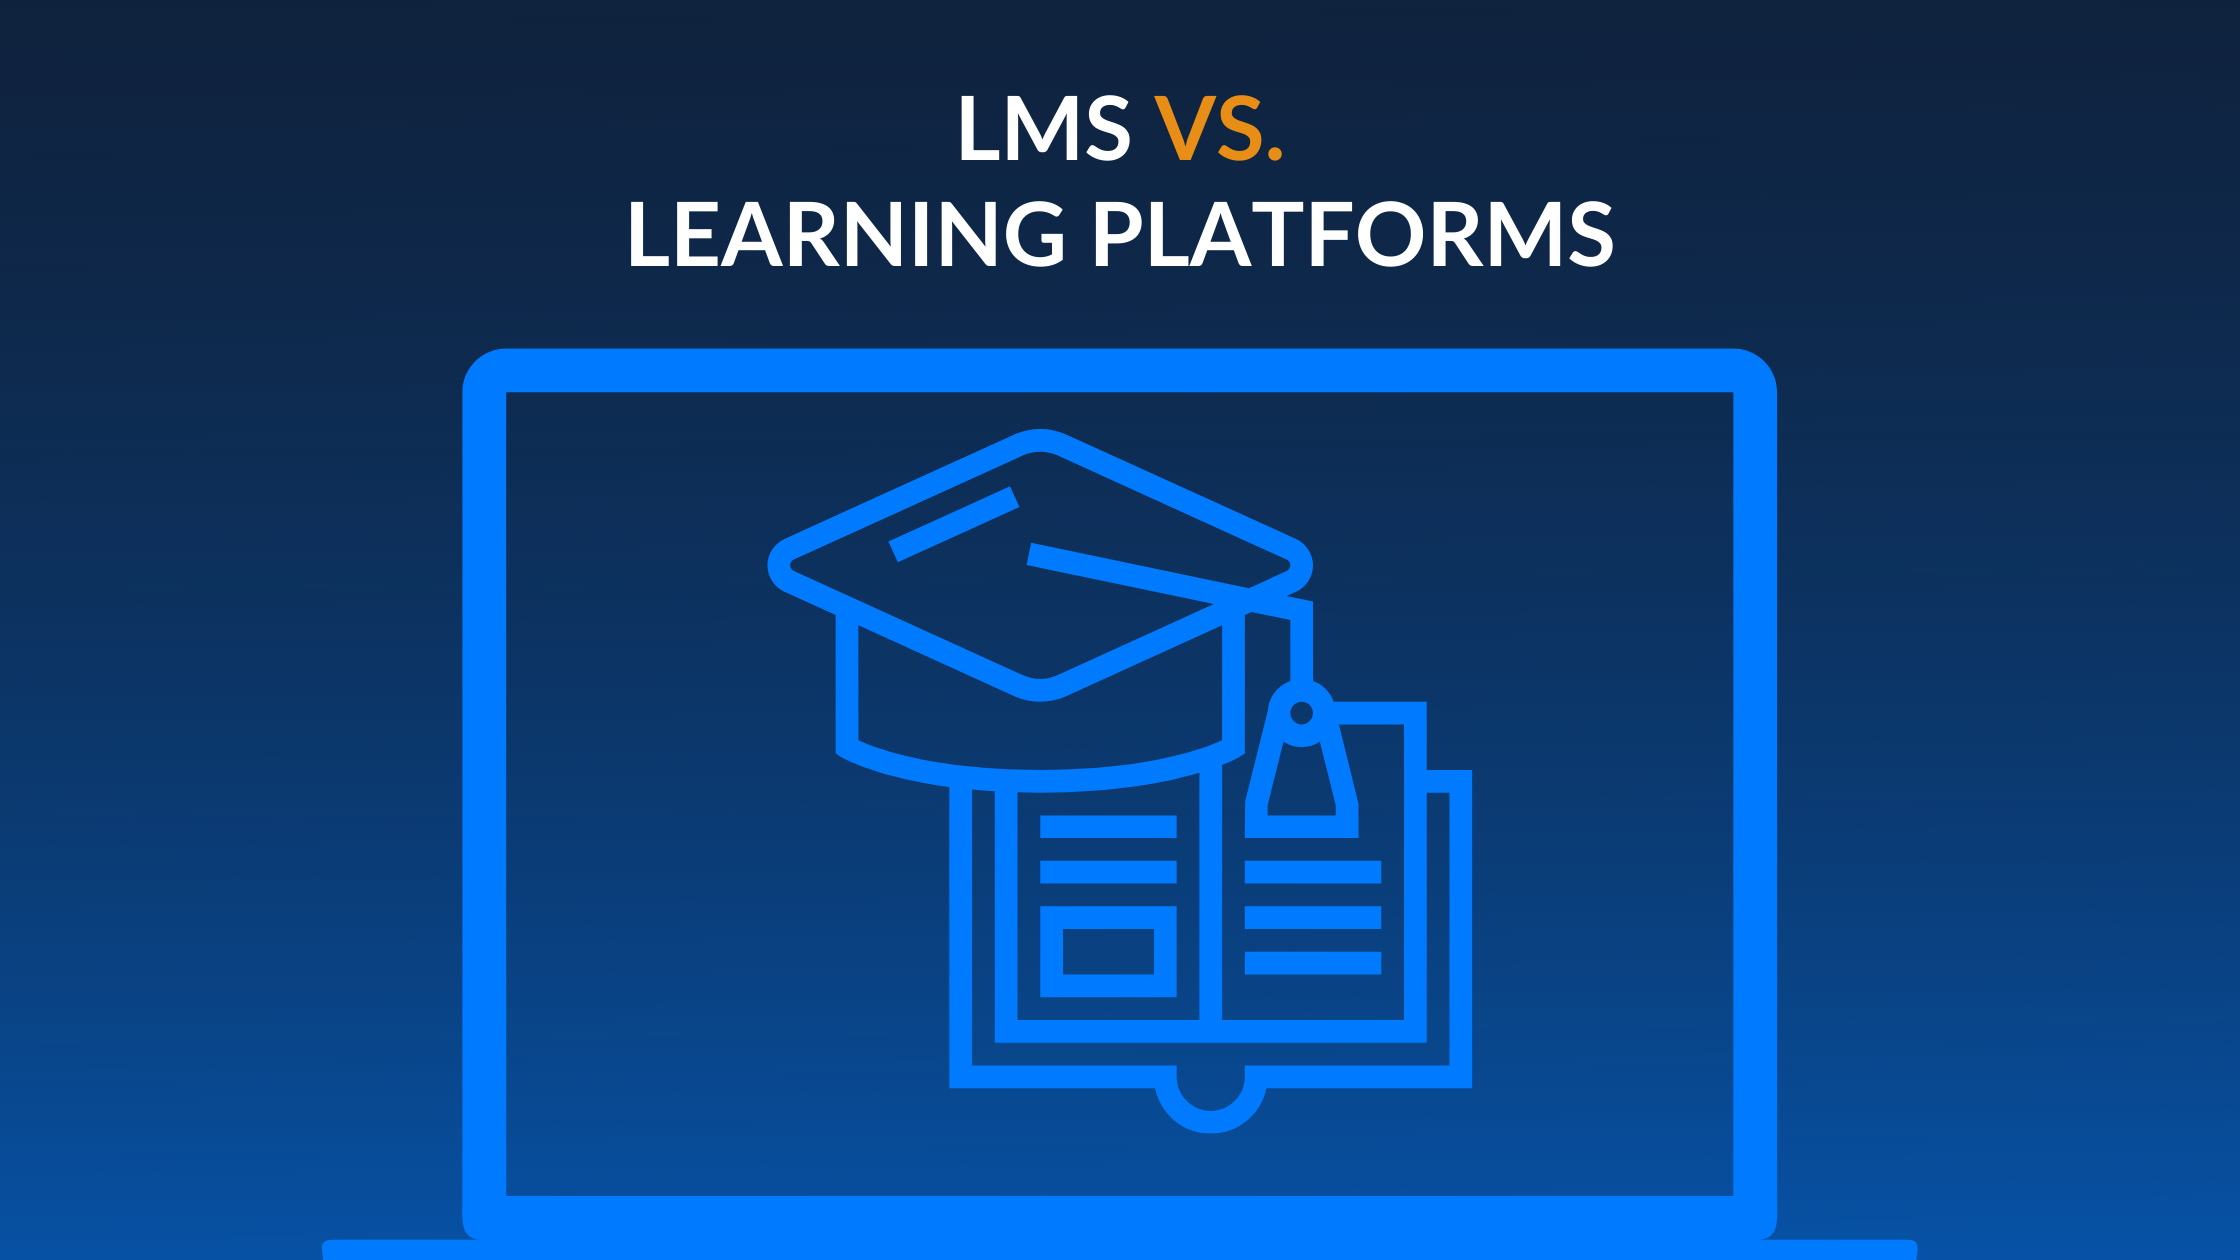 LMS vs. Learning Platforms